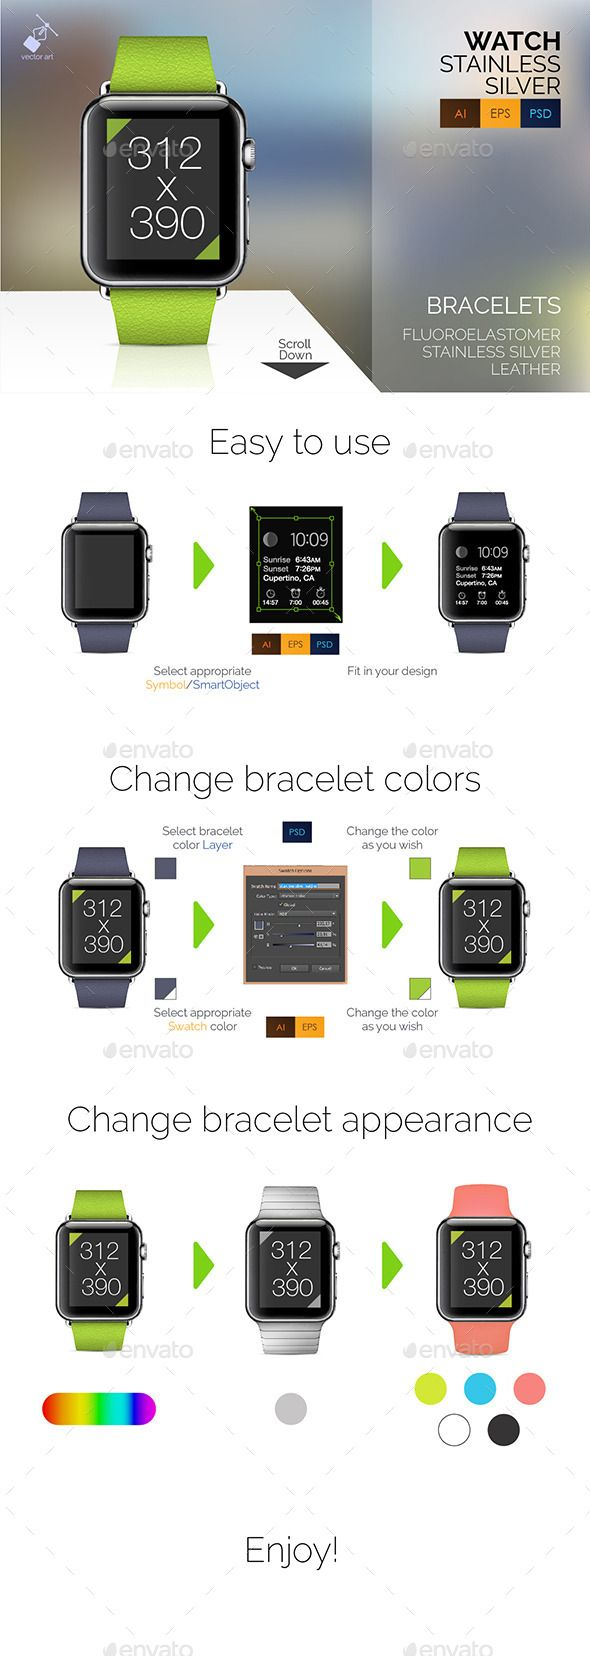 Smart Watch Stainless Vector Mockup Set #watchmockup #smartwatchmockup Download: http://graphicriver.net/item/smart-watch-stainless-vector-mockup-set/10556811?ref=ksioks